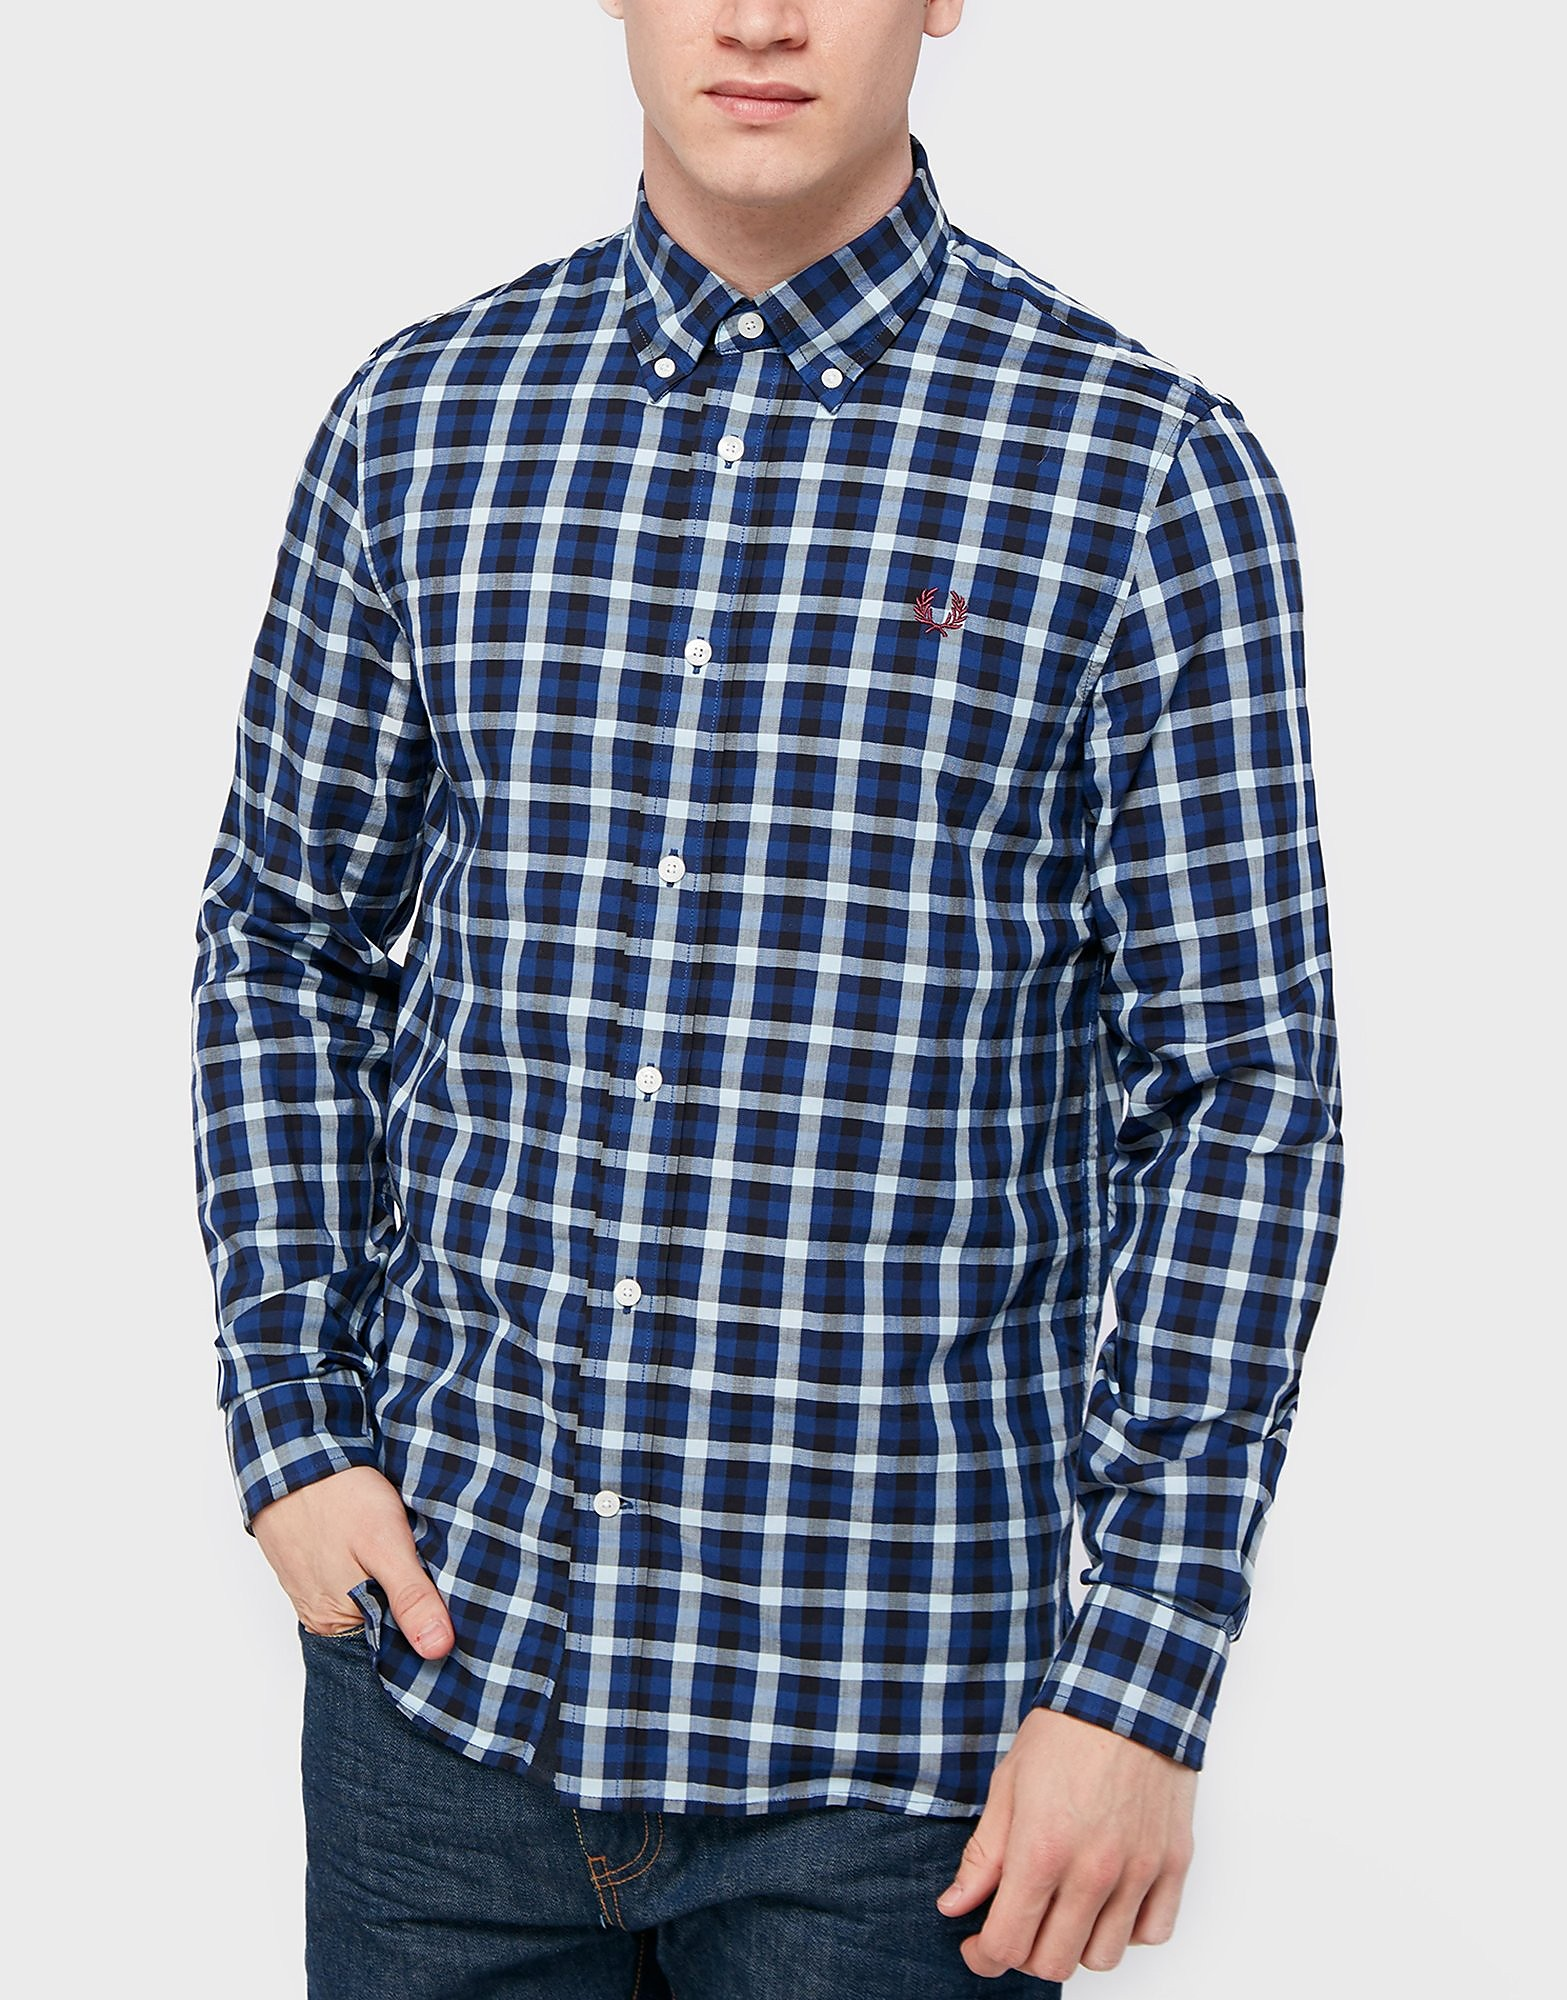 Fred Perry Herringbone Gingham Shirt